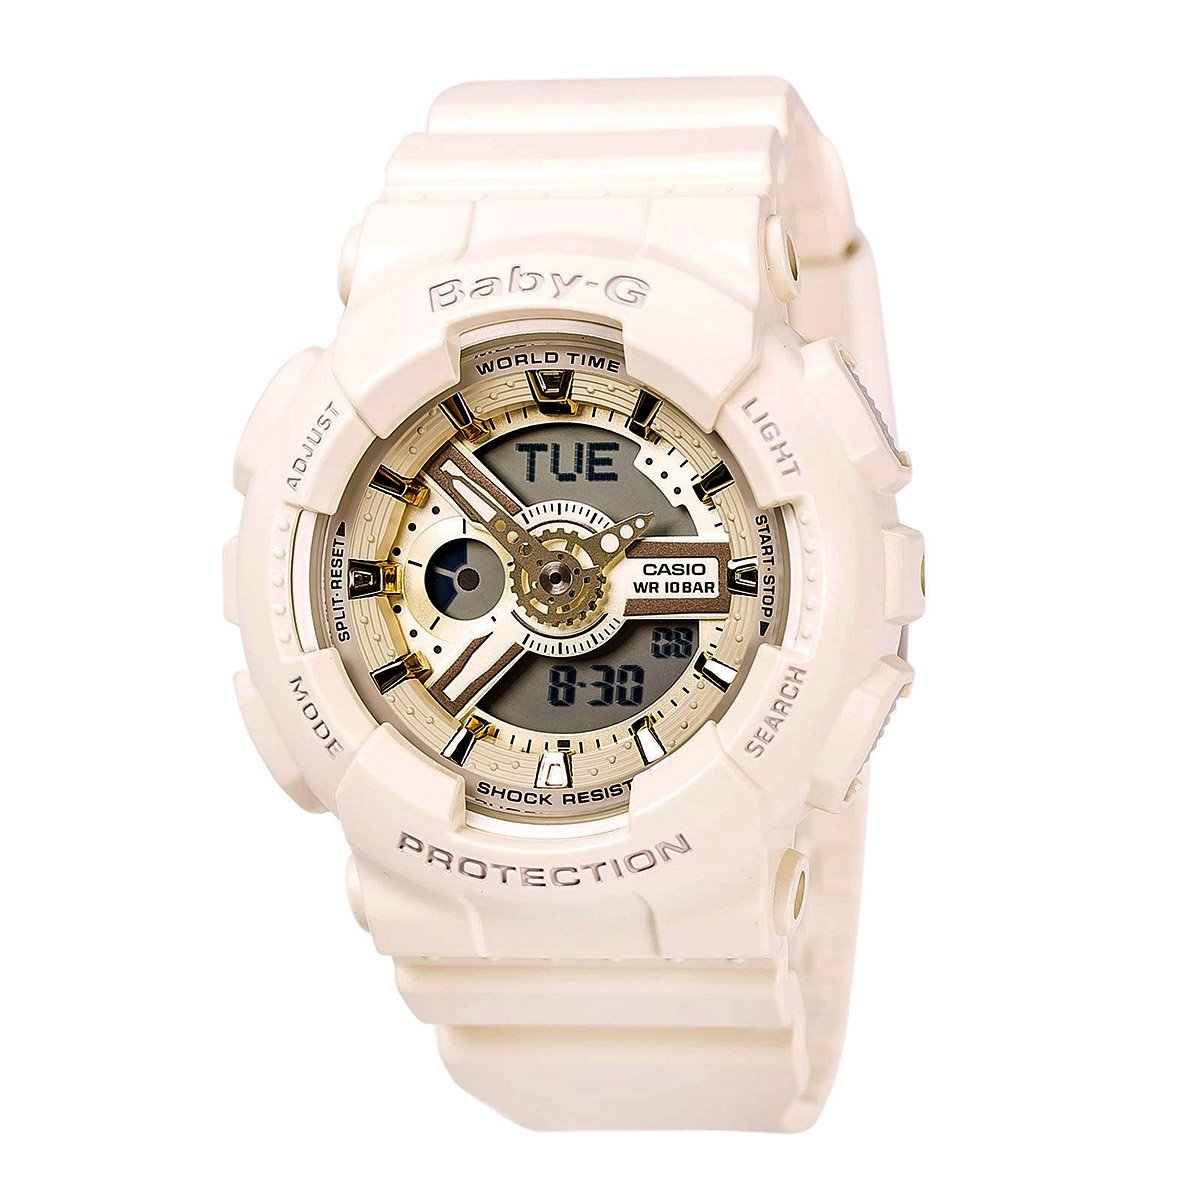 G-Shock BA-125 Series Pink - Pink / One Size